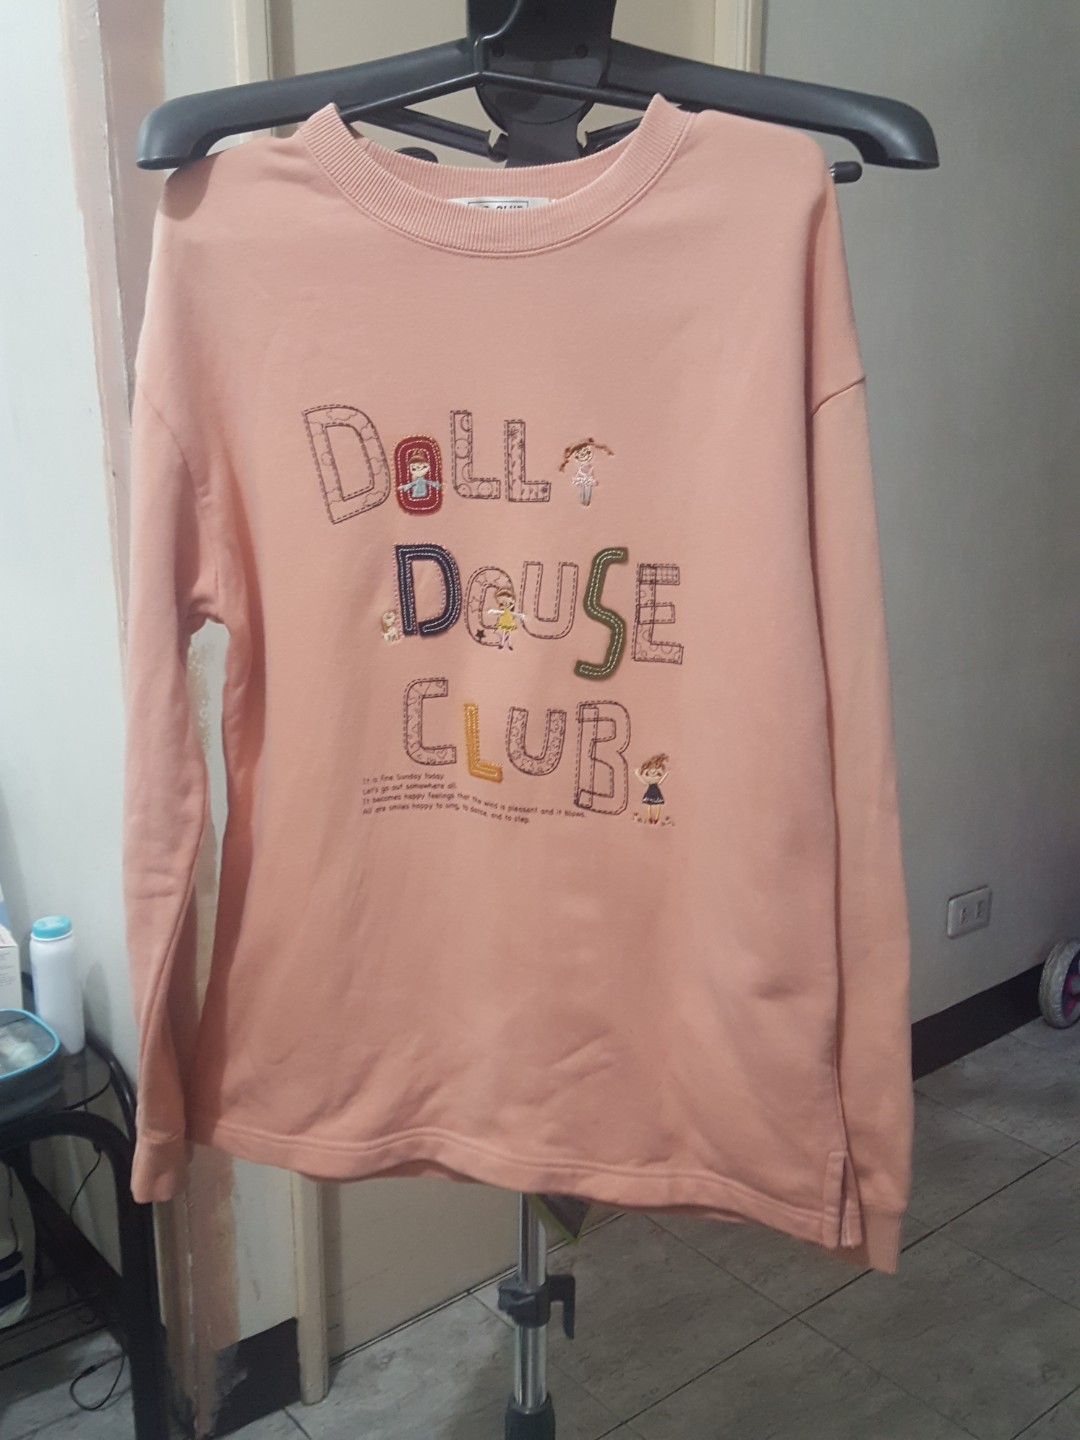 Doll house club pink sweat shirt longsleeves